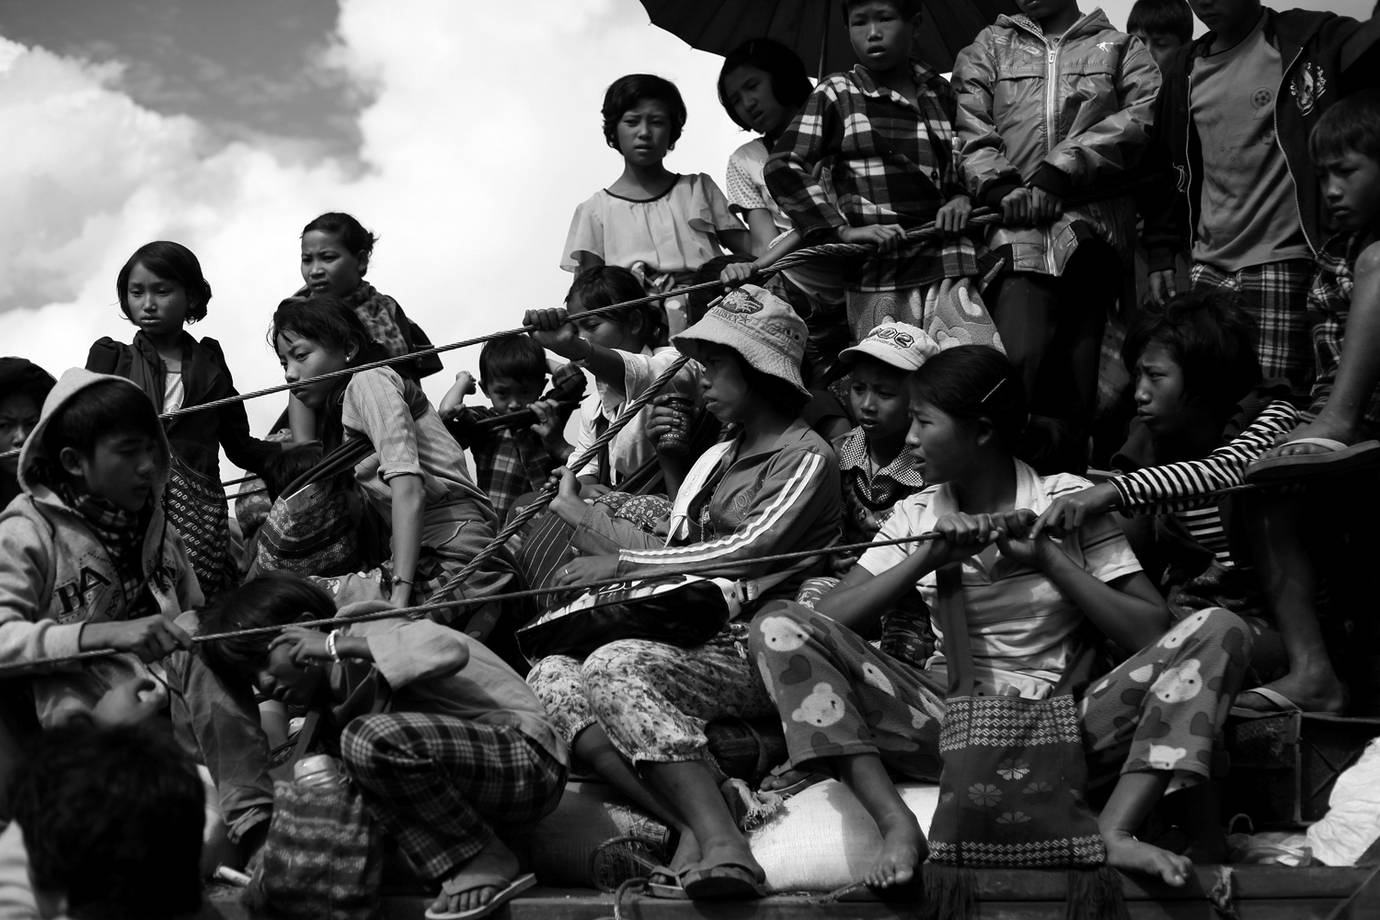 Kachin IDPs fleeing Namlim Pa. (PHOTO: Lee Yu Kyung)